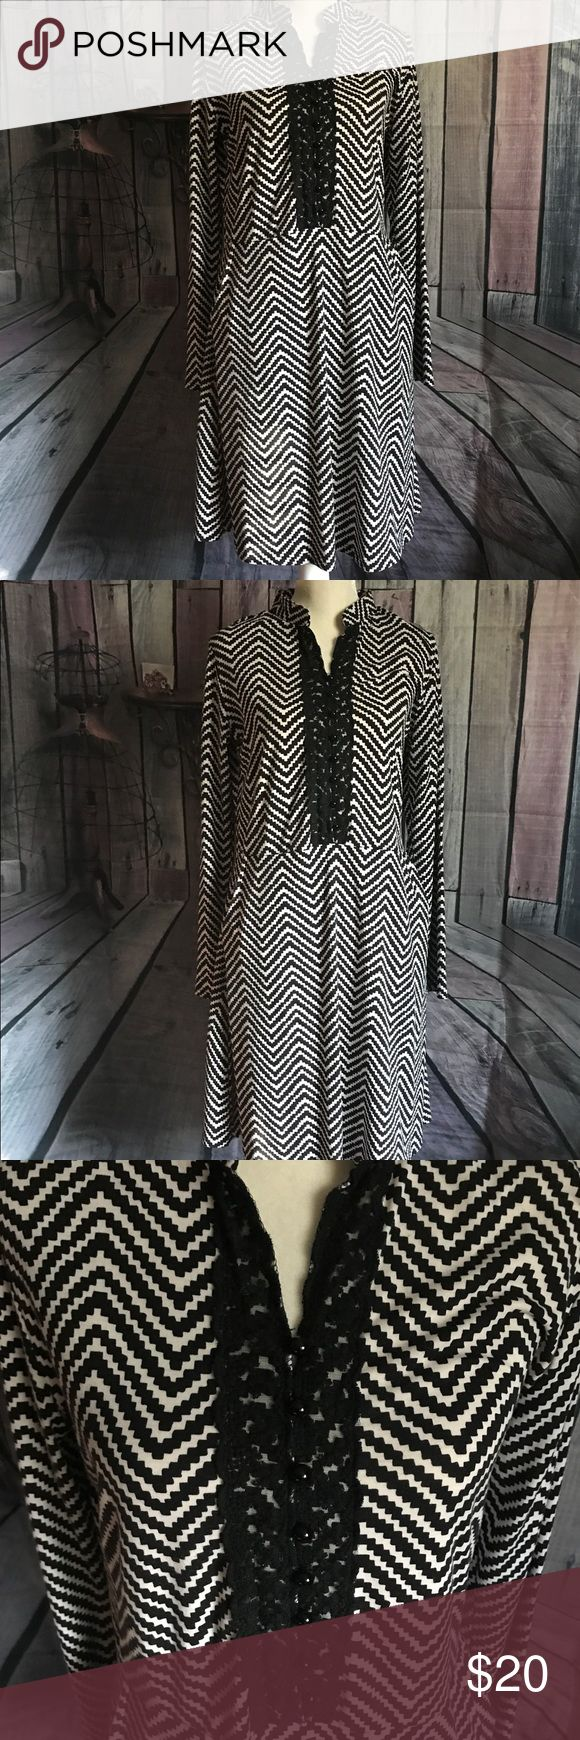 ❤️Adorable Chevron print Dress❤️ Black and white chevron print midi dress. Looks super cute with tall black boots in the fall. This dress has a hidden pocket on each side (shown in pictures) and lace detail on the top front (also pictured). Reborn Dresses Midi